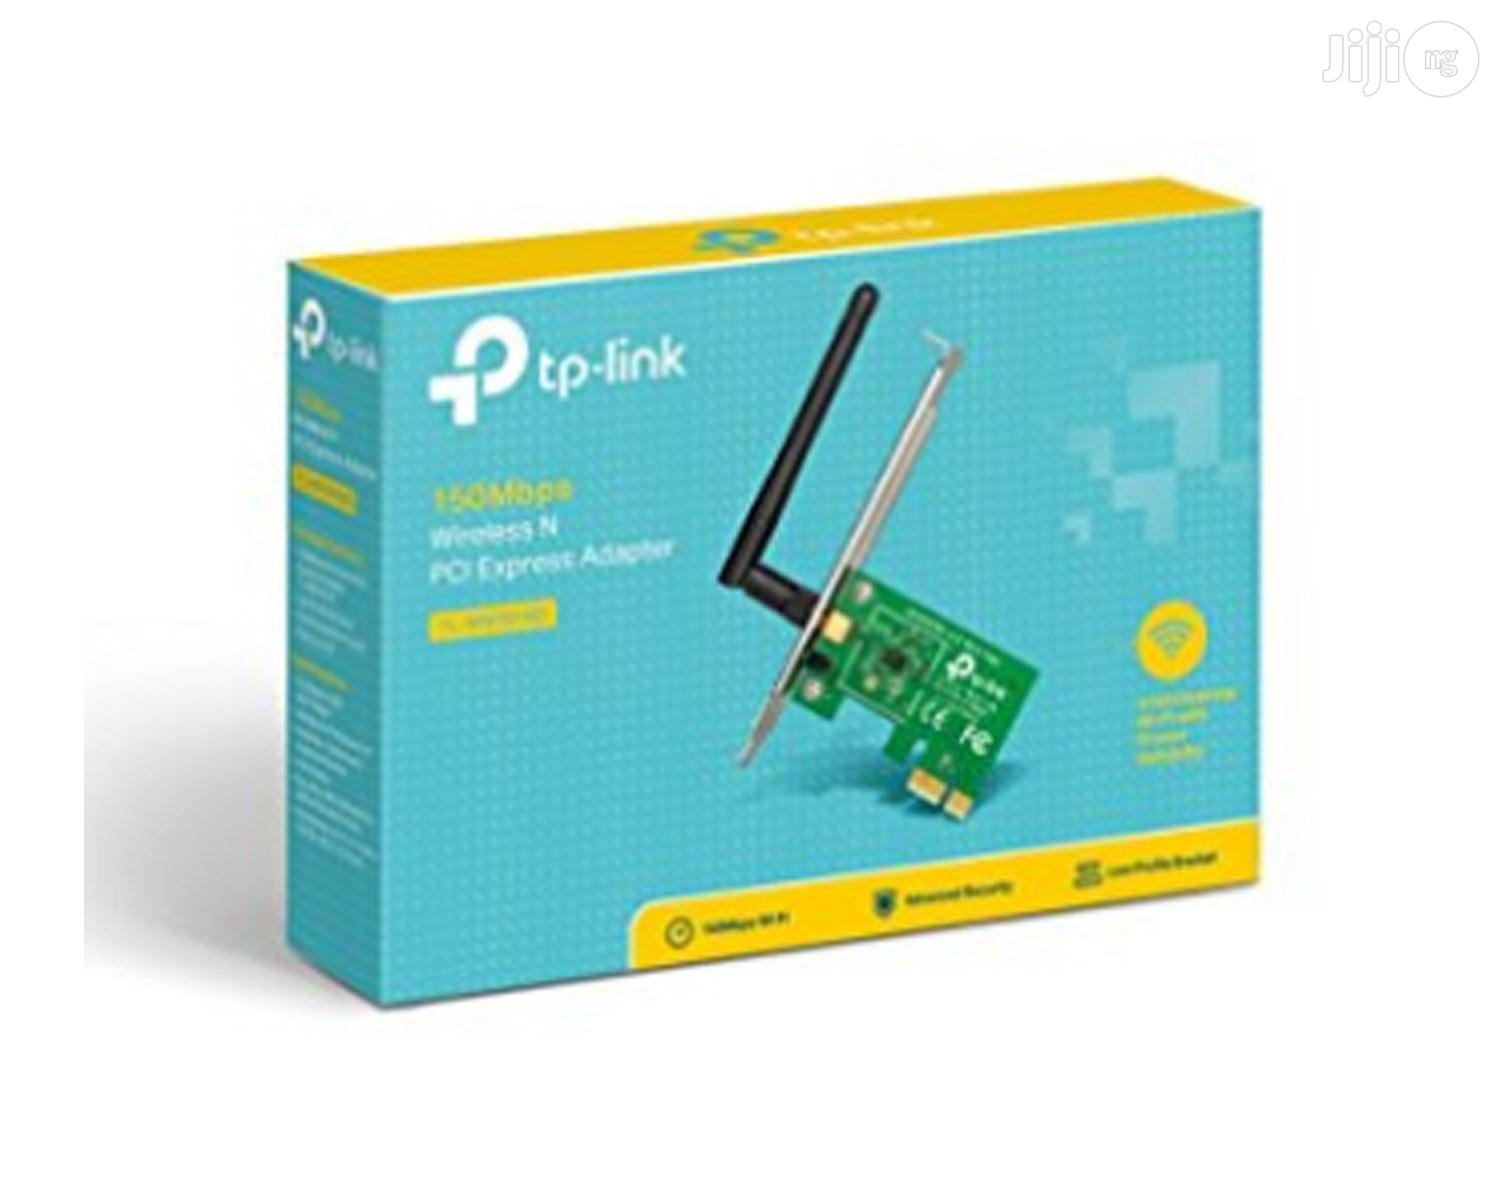 Archive: Tp-link 150mbps Wireless N Pci Express Adapter Tl-wn781nd